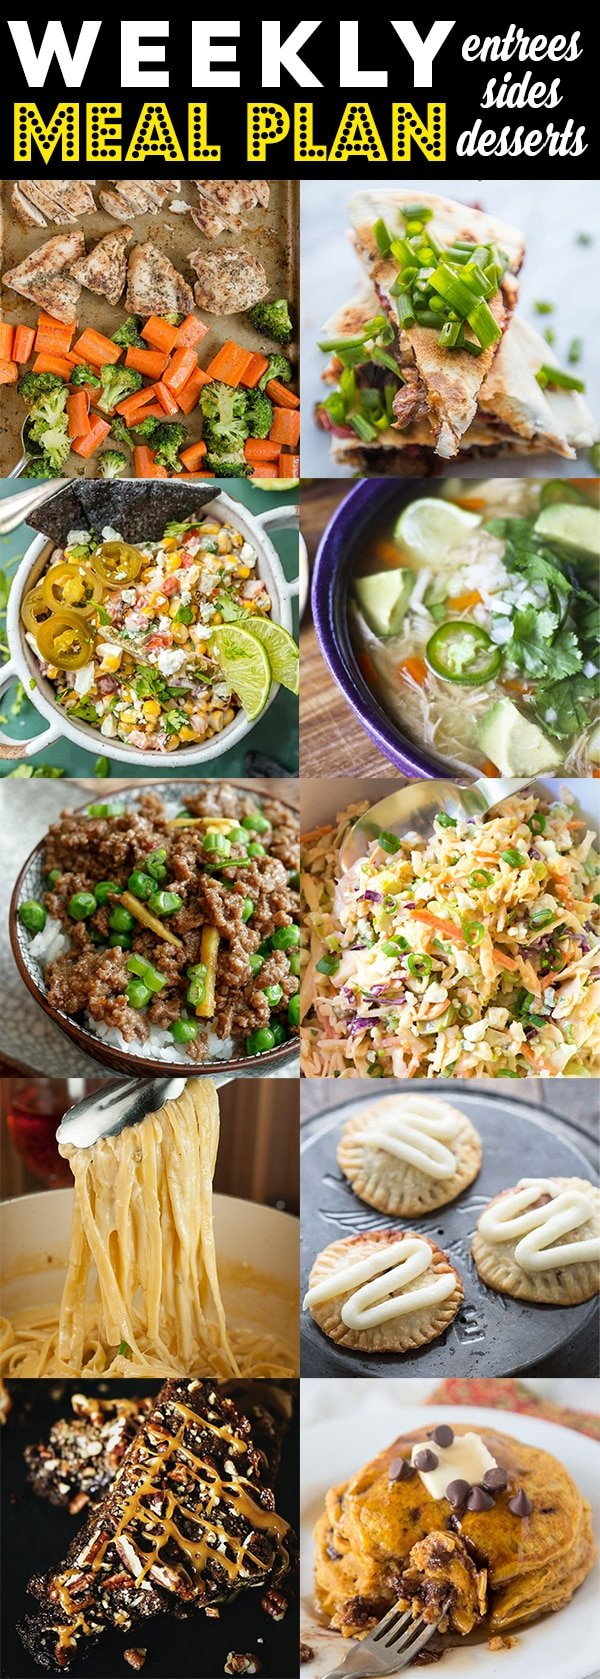 Weekly Meal Plan Week 89 - 10 great bloggers bringing you a full week of recipes including dinner, sides dishes, and desserts!